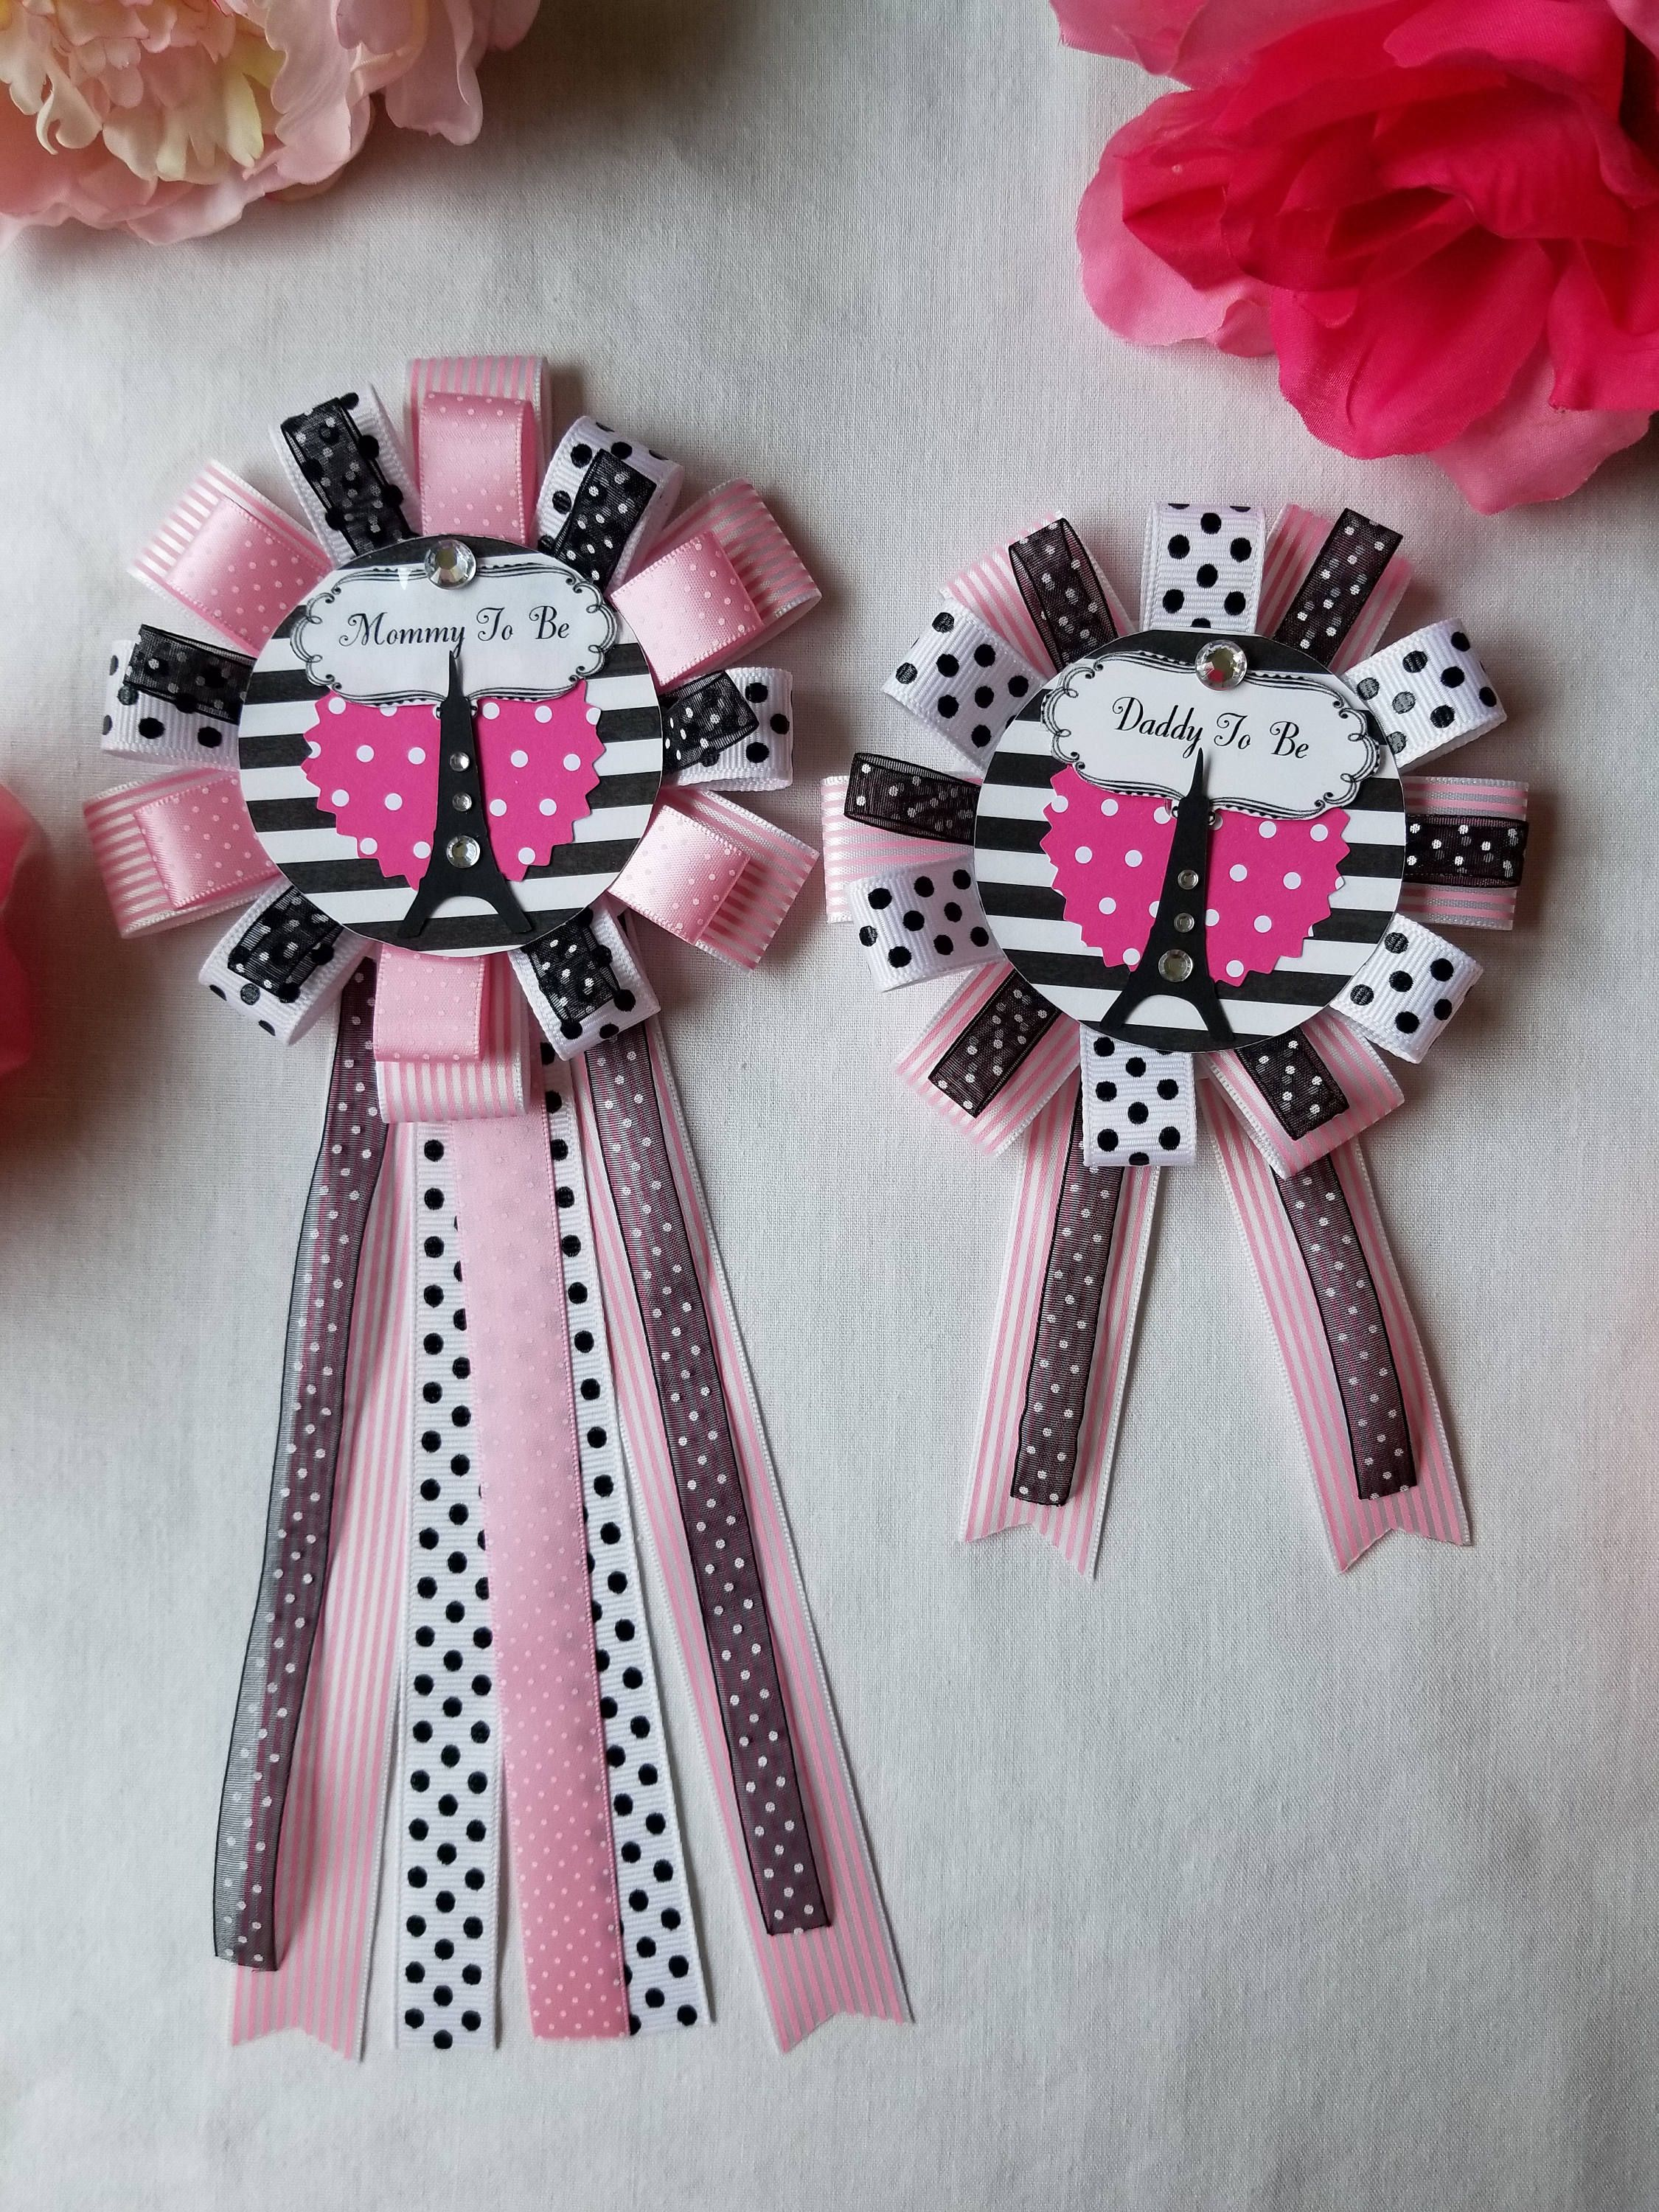 Baby Shower Corsage Mommy To Be Daddy To Be Corsage Pin Set